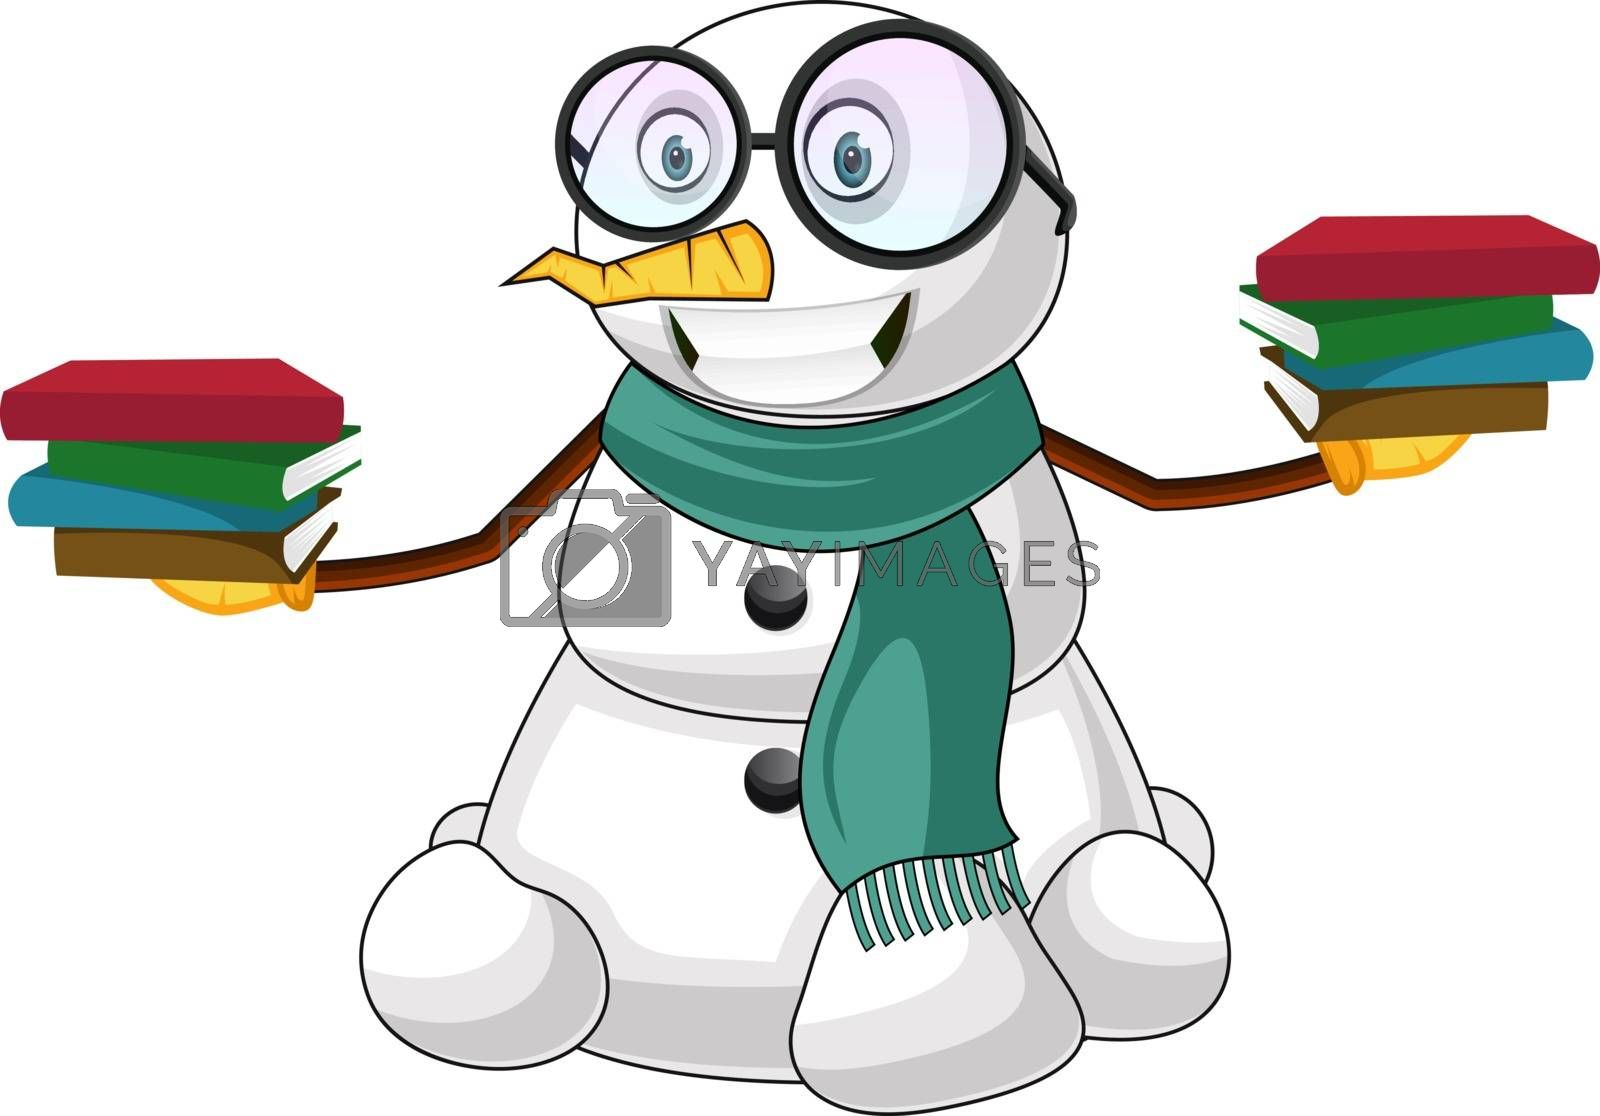 Royalty free image of Smart Snowman illustration vector on white background by Morphart